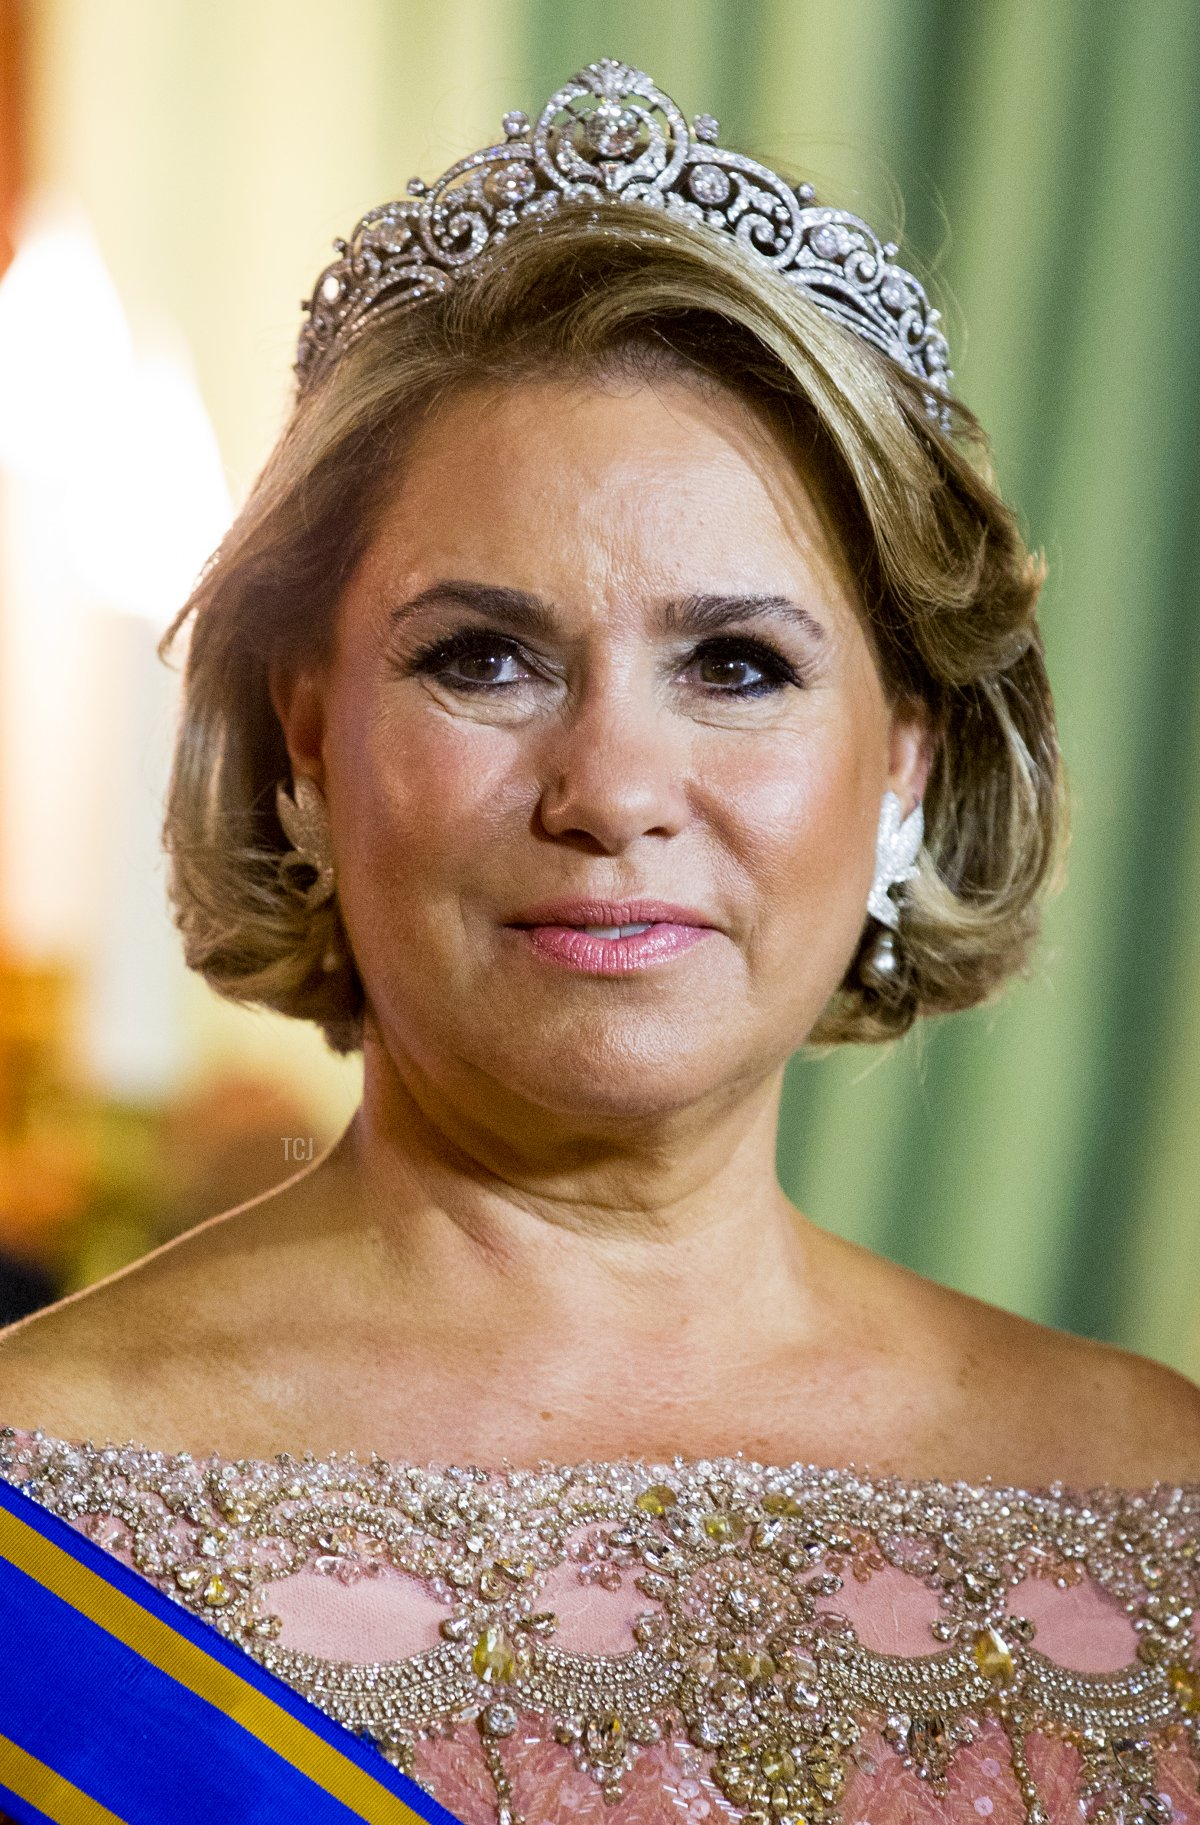 Grand Duchess Maria Teresa during the official picture at the state banquet in the Grand Ducal Palace on May 23, 2018 in Luxembourg, Luxembourg. The Dutch King and Queen are in Luxembourg for a three day state visit